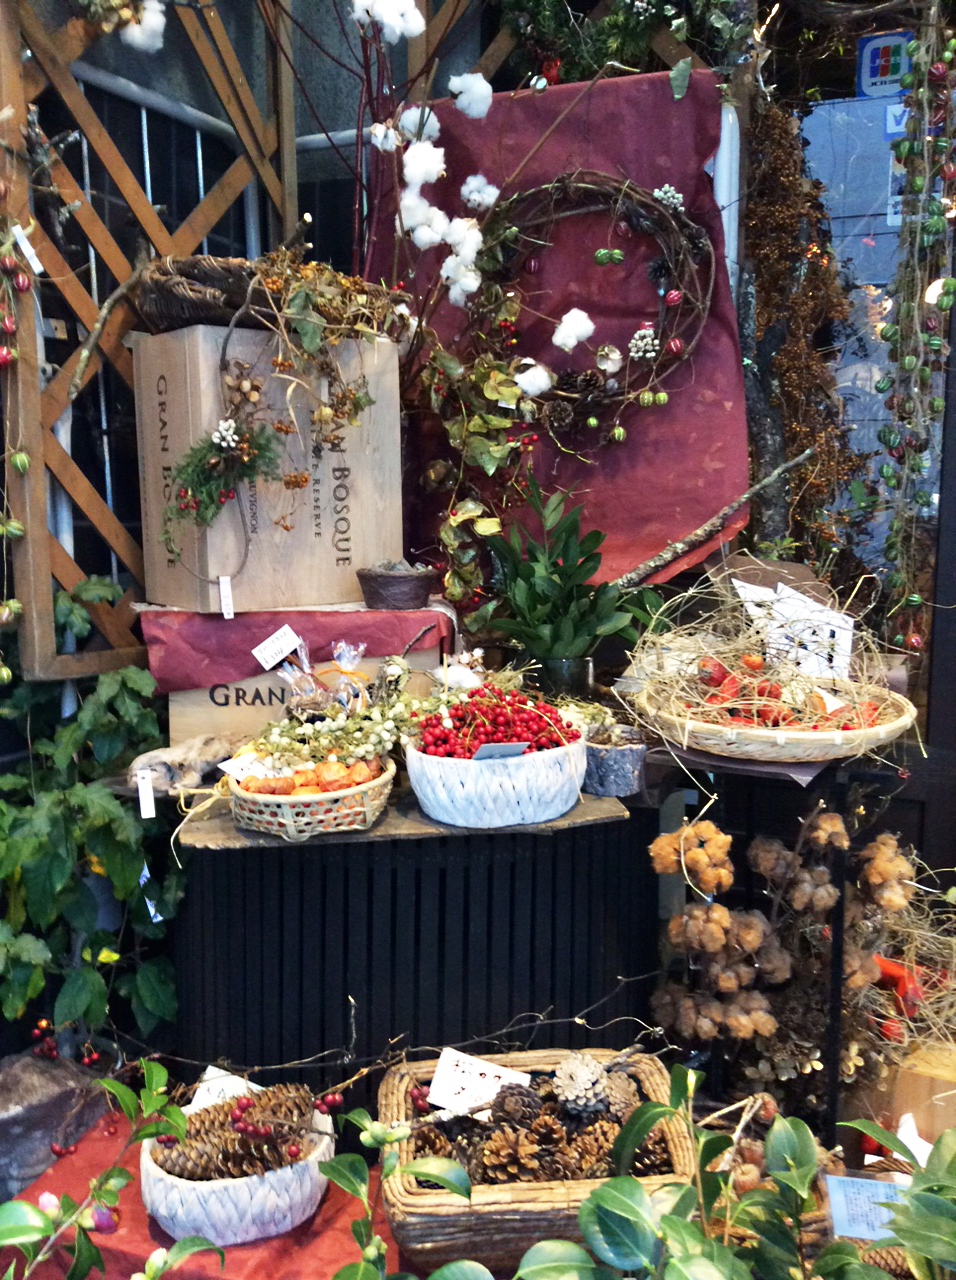 Outside my favourite flowershop are displays of seasonal fruits: red berries, fir cones and seed heads, together with glossy green leaves and twiggy wreaths displayed on boxes and in baskets.